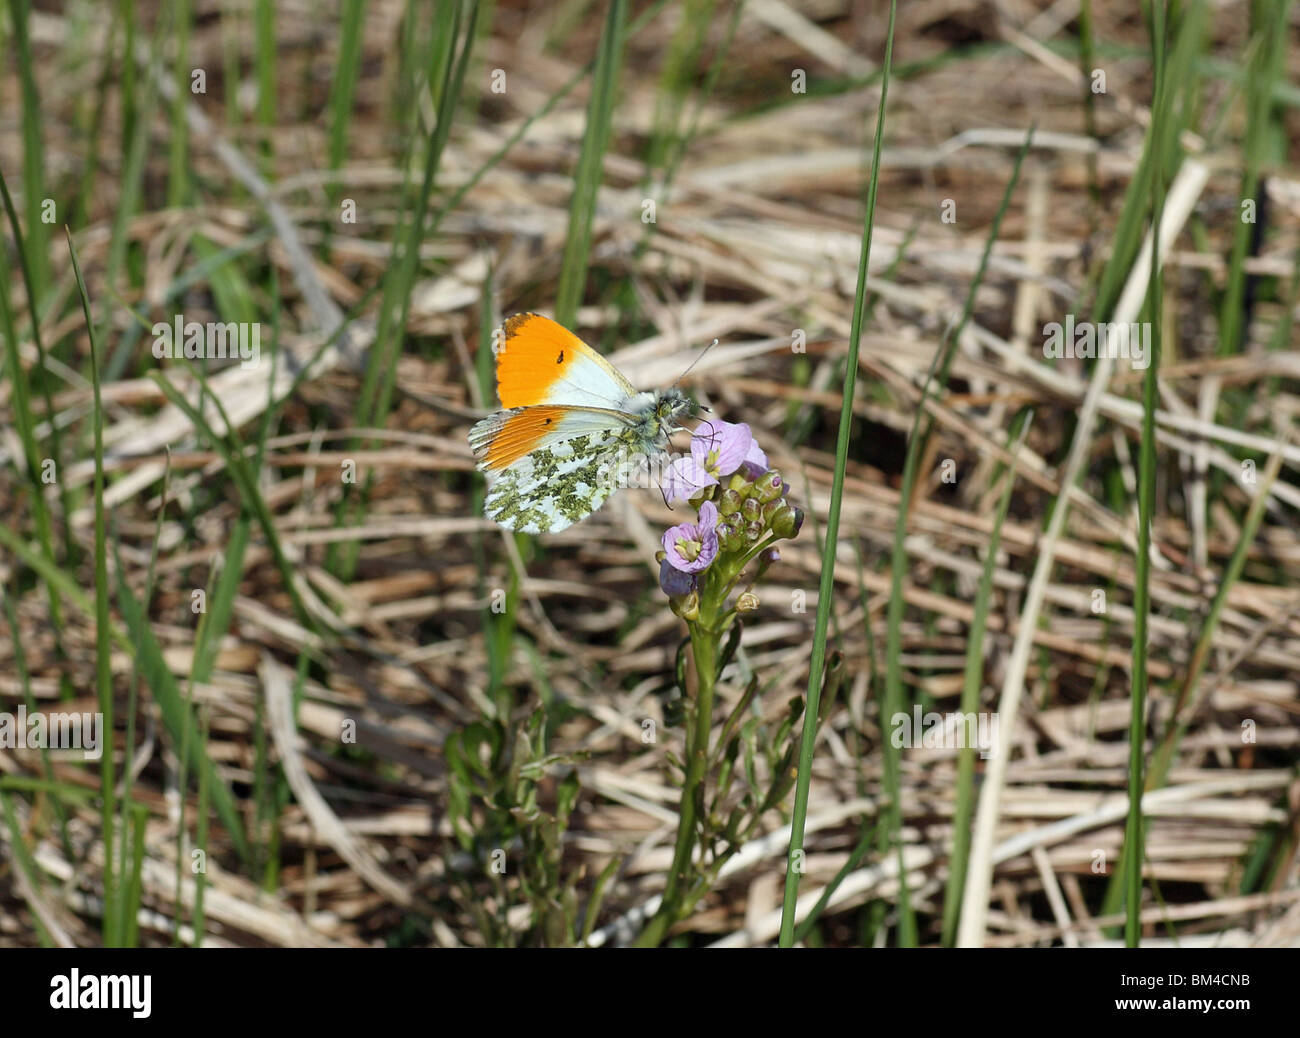 orange-tip-butterfly-anthocharis-cardamines-nectering-on-a-cuckooflower-BM4CNB.jpg